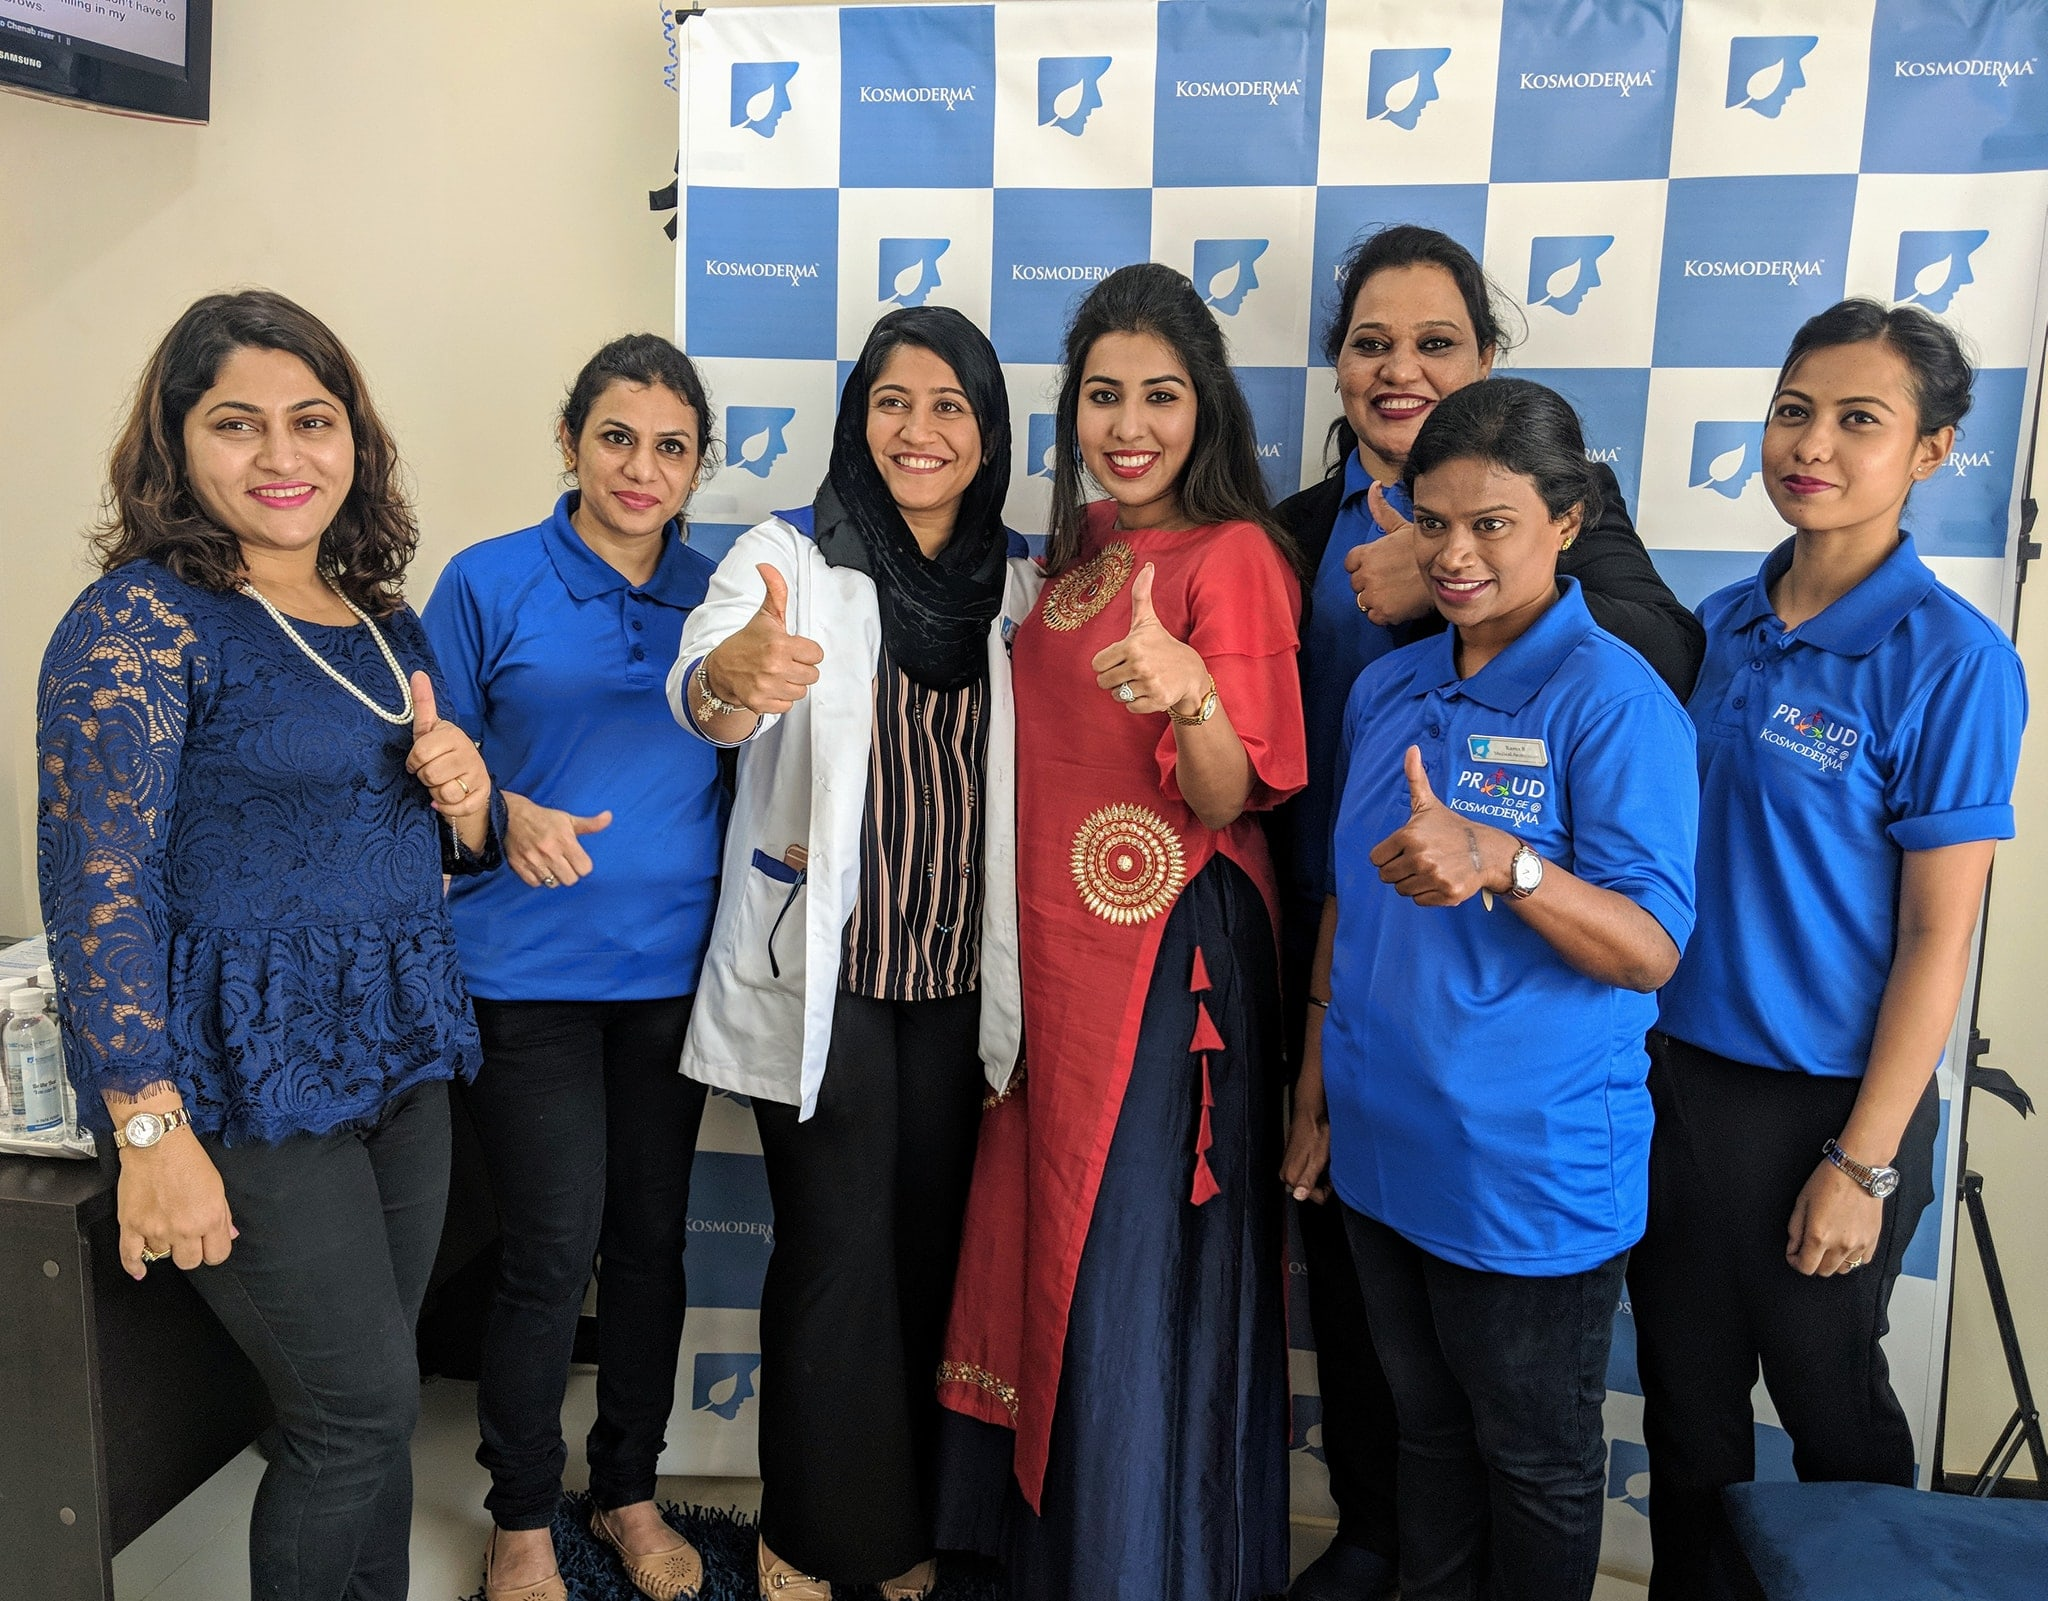 Grand Launch of Kosmoderma Clinic , Whitefield, Bangalore 2018